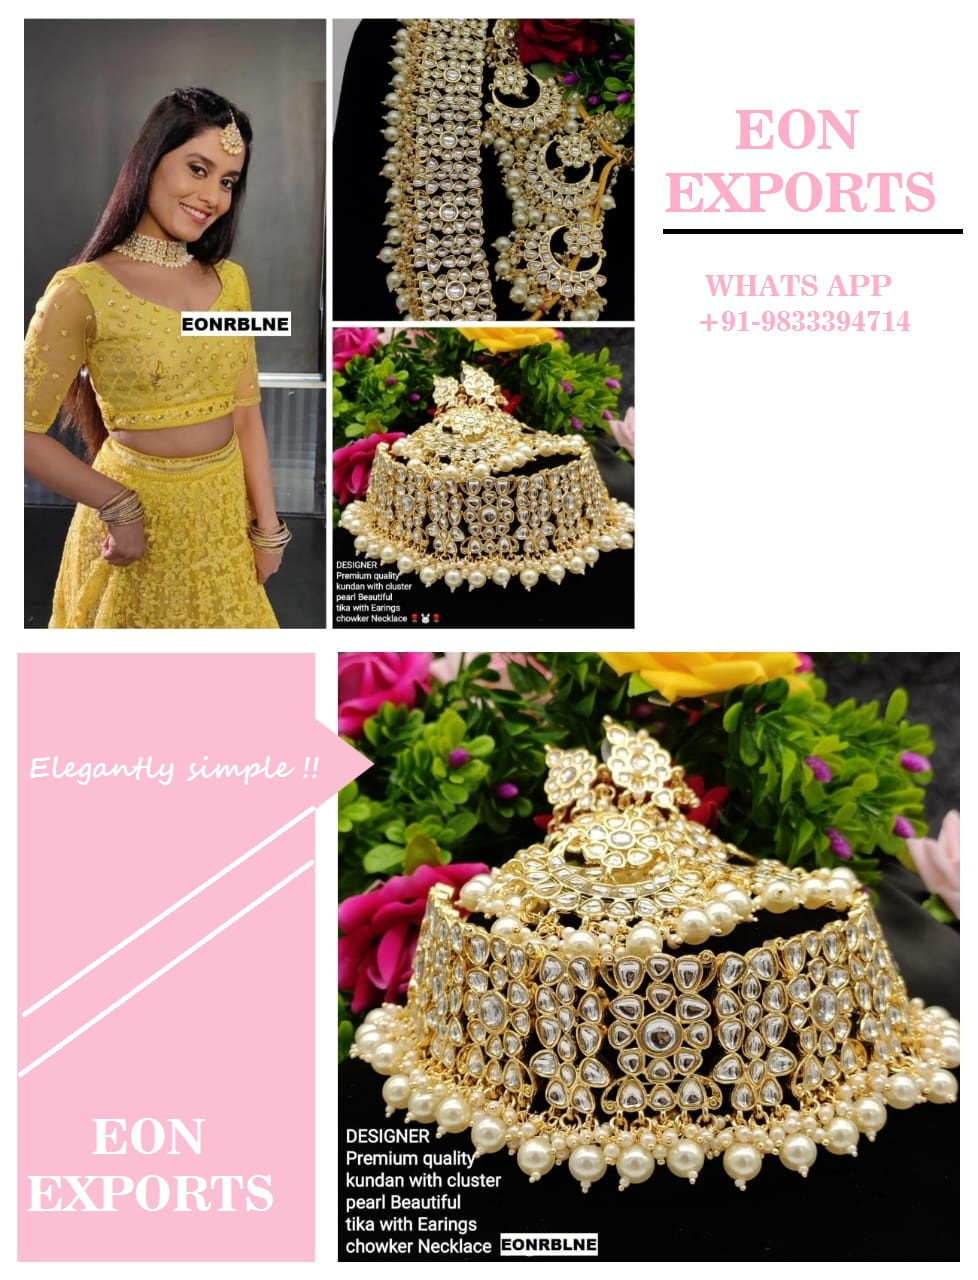 Imitation Jewellery Manufacturers Suppliers From Bangalore